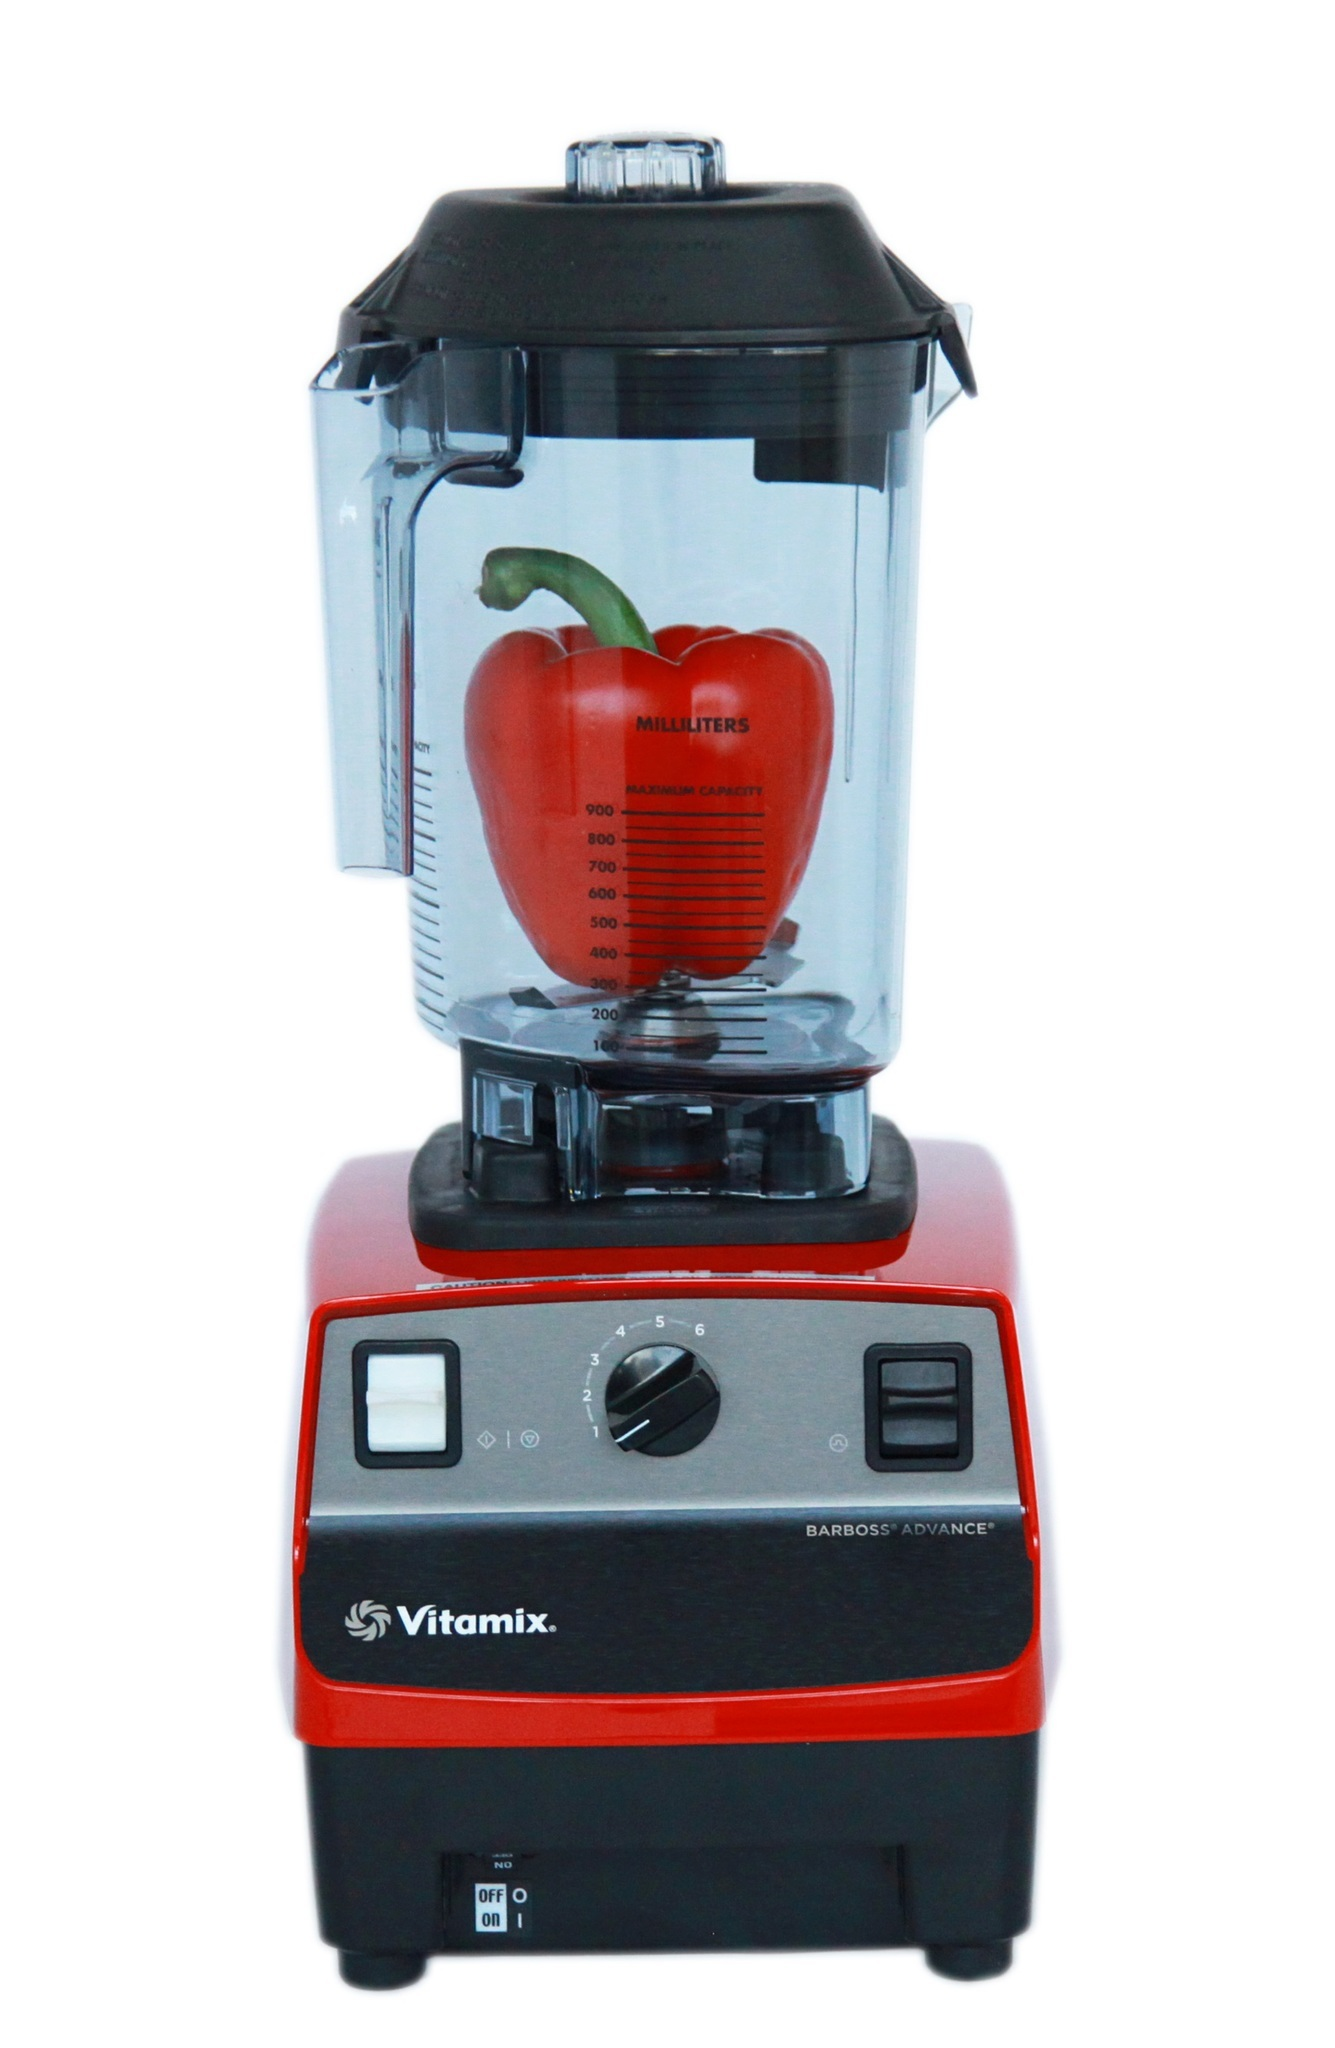 Блендер Vitamix Barboss Advance vm0127 красный